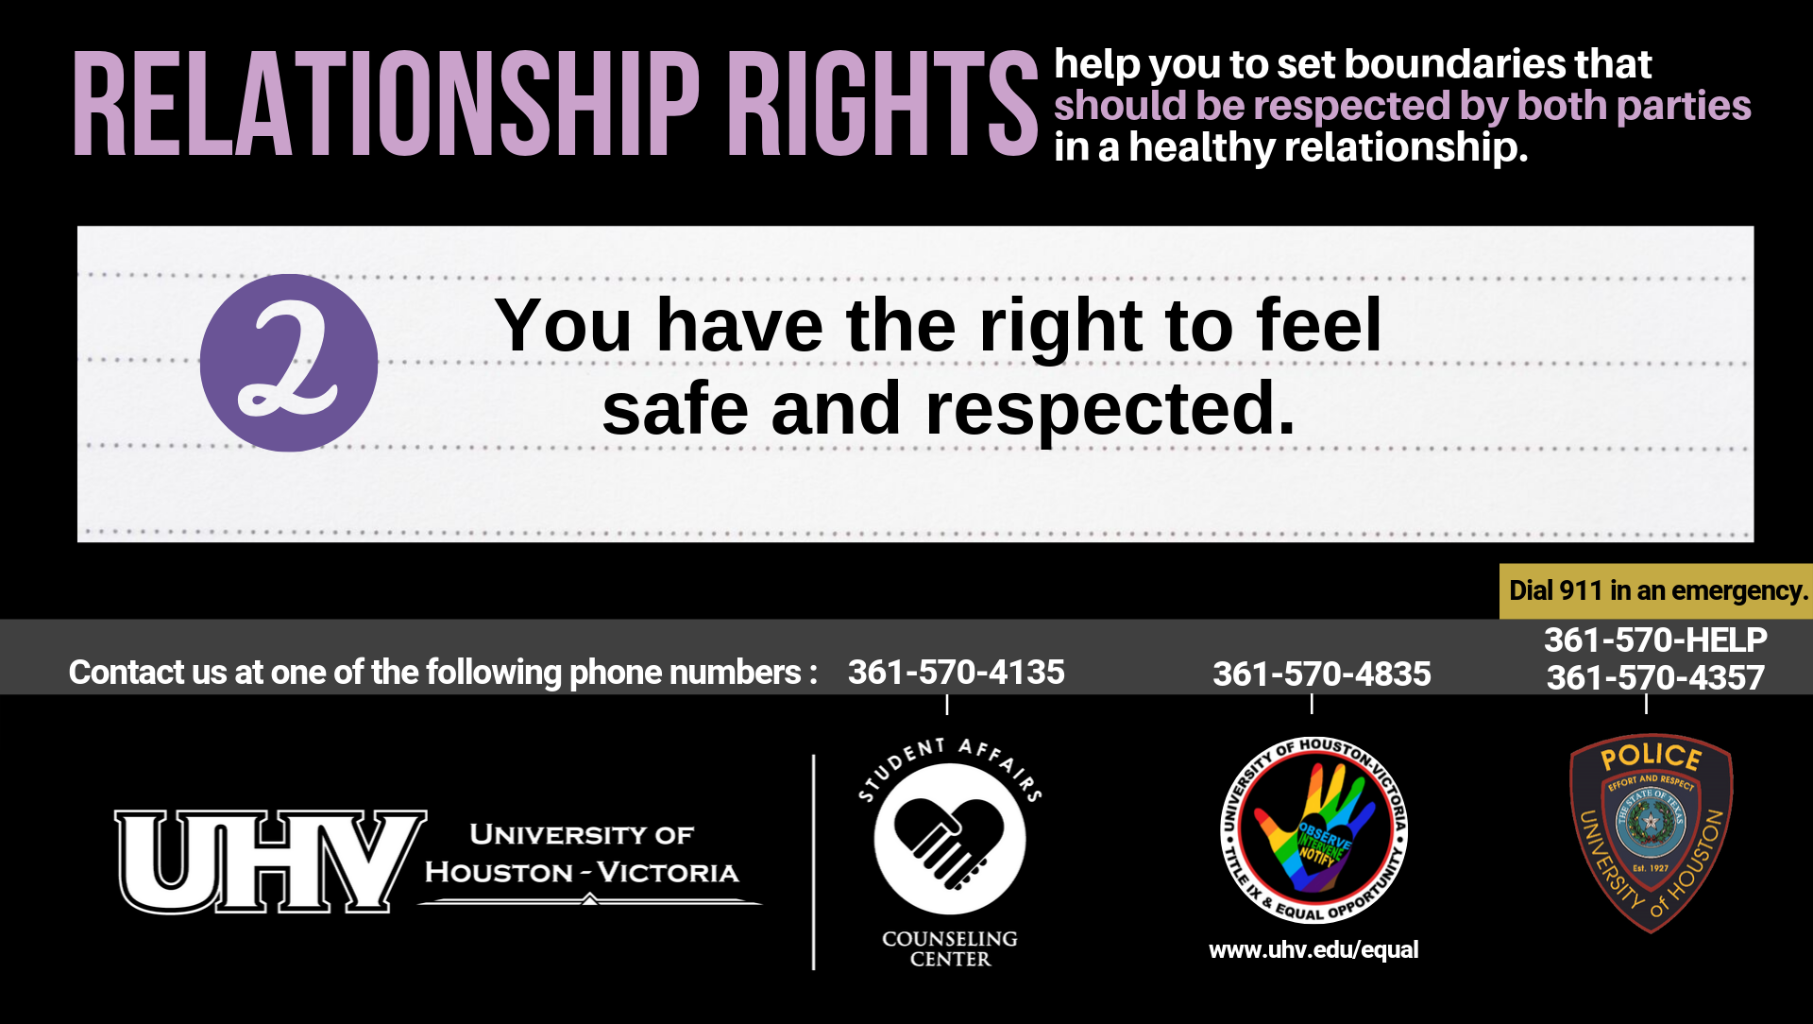 Relationship Rights help you to set boundaries that should be respected by both parties in a healthy relationship. 2. You have the right to feel safe and respected. University of Houston-Victoria Title IX and Equal Opportunity Logo (rainbow hand with heart insert with words Observe, Intervene, Notify).